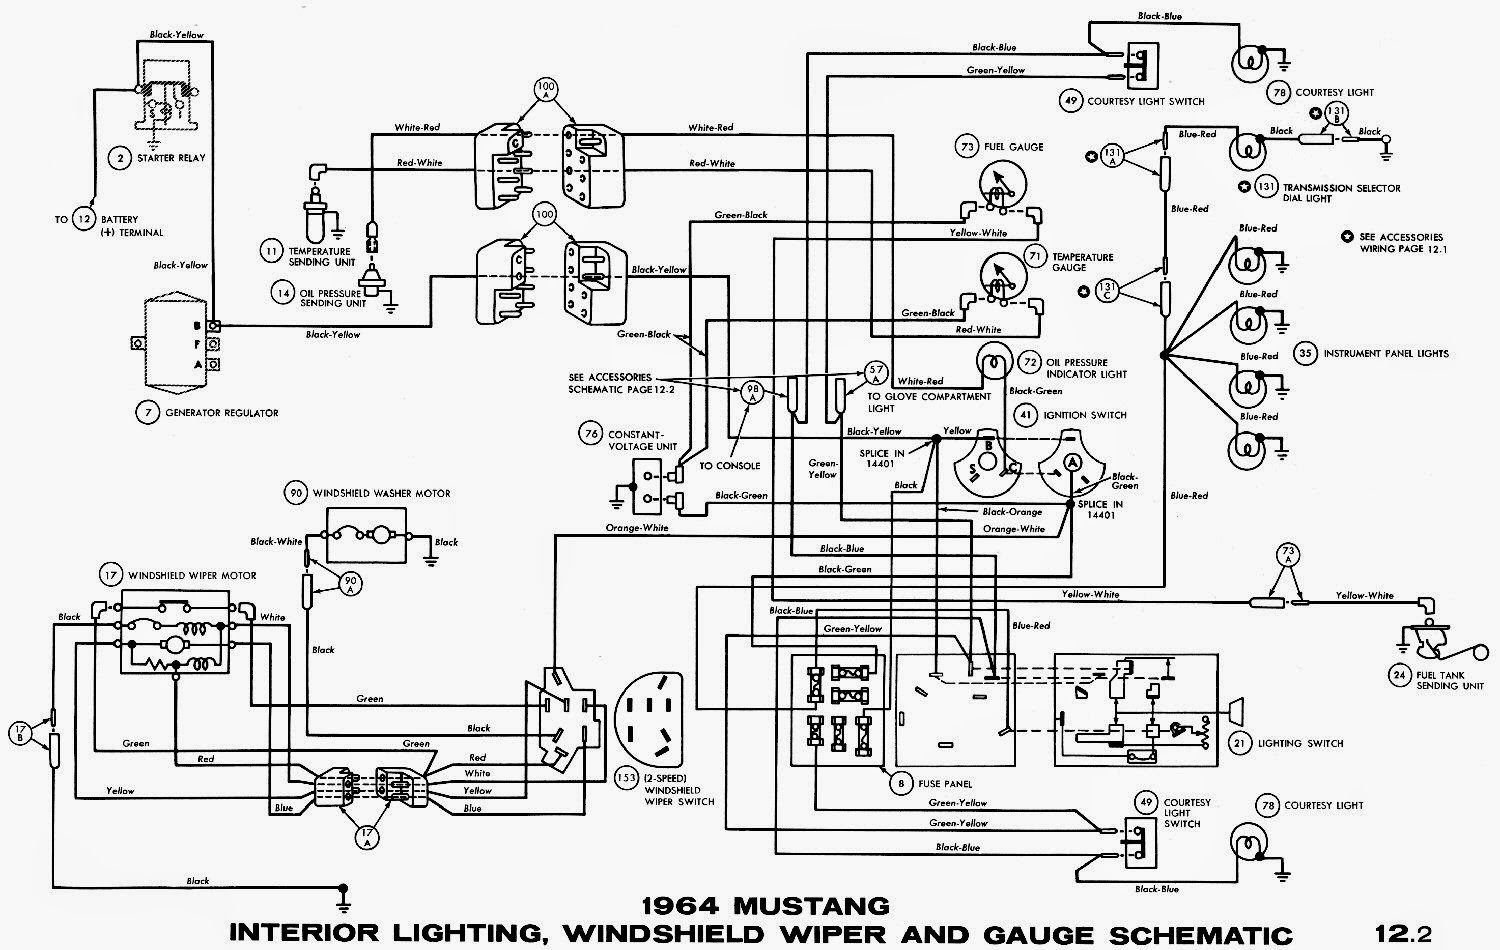 1989 ford bronco ii wiring diagram 1964 mustang wiring diagrams schematic | wiring diagrams #9